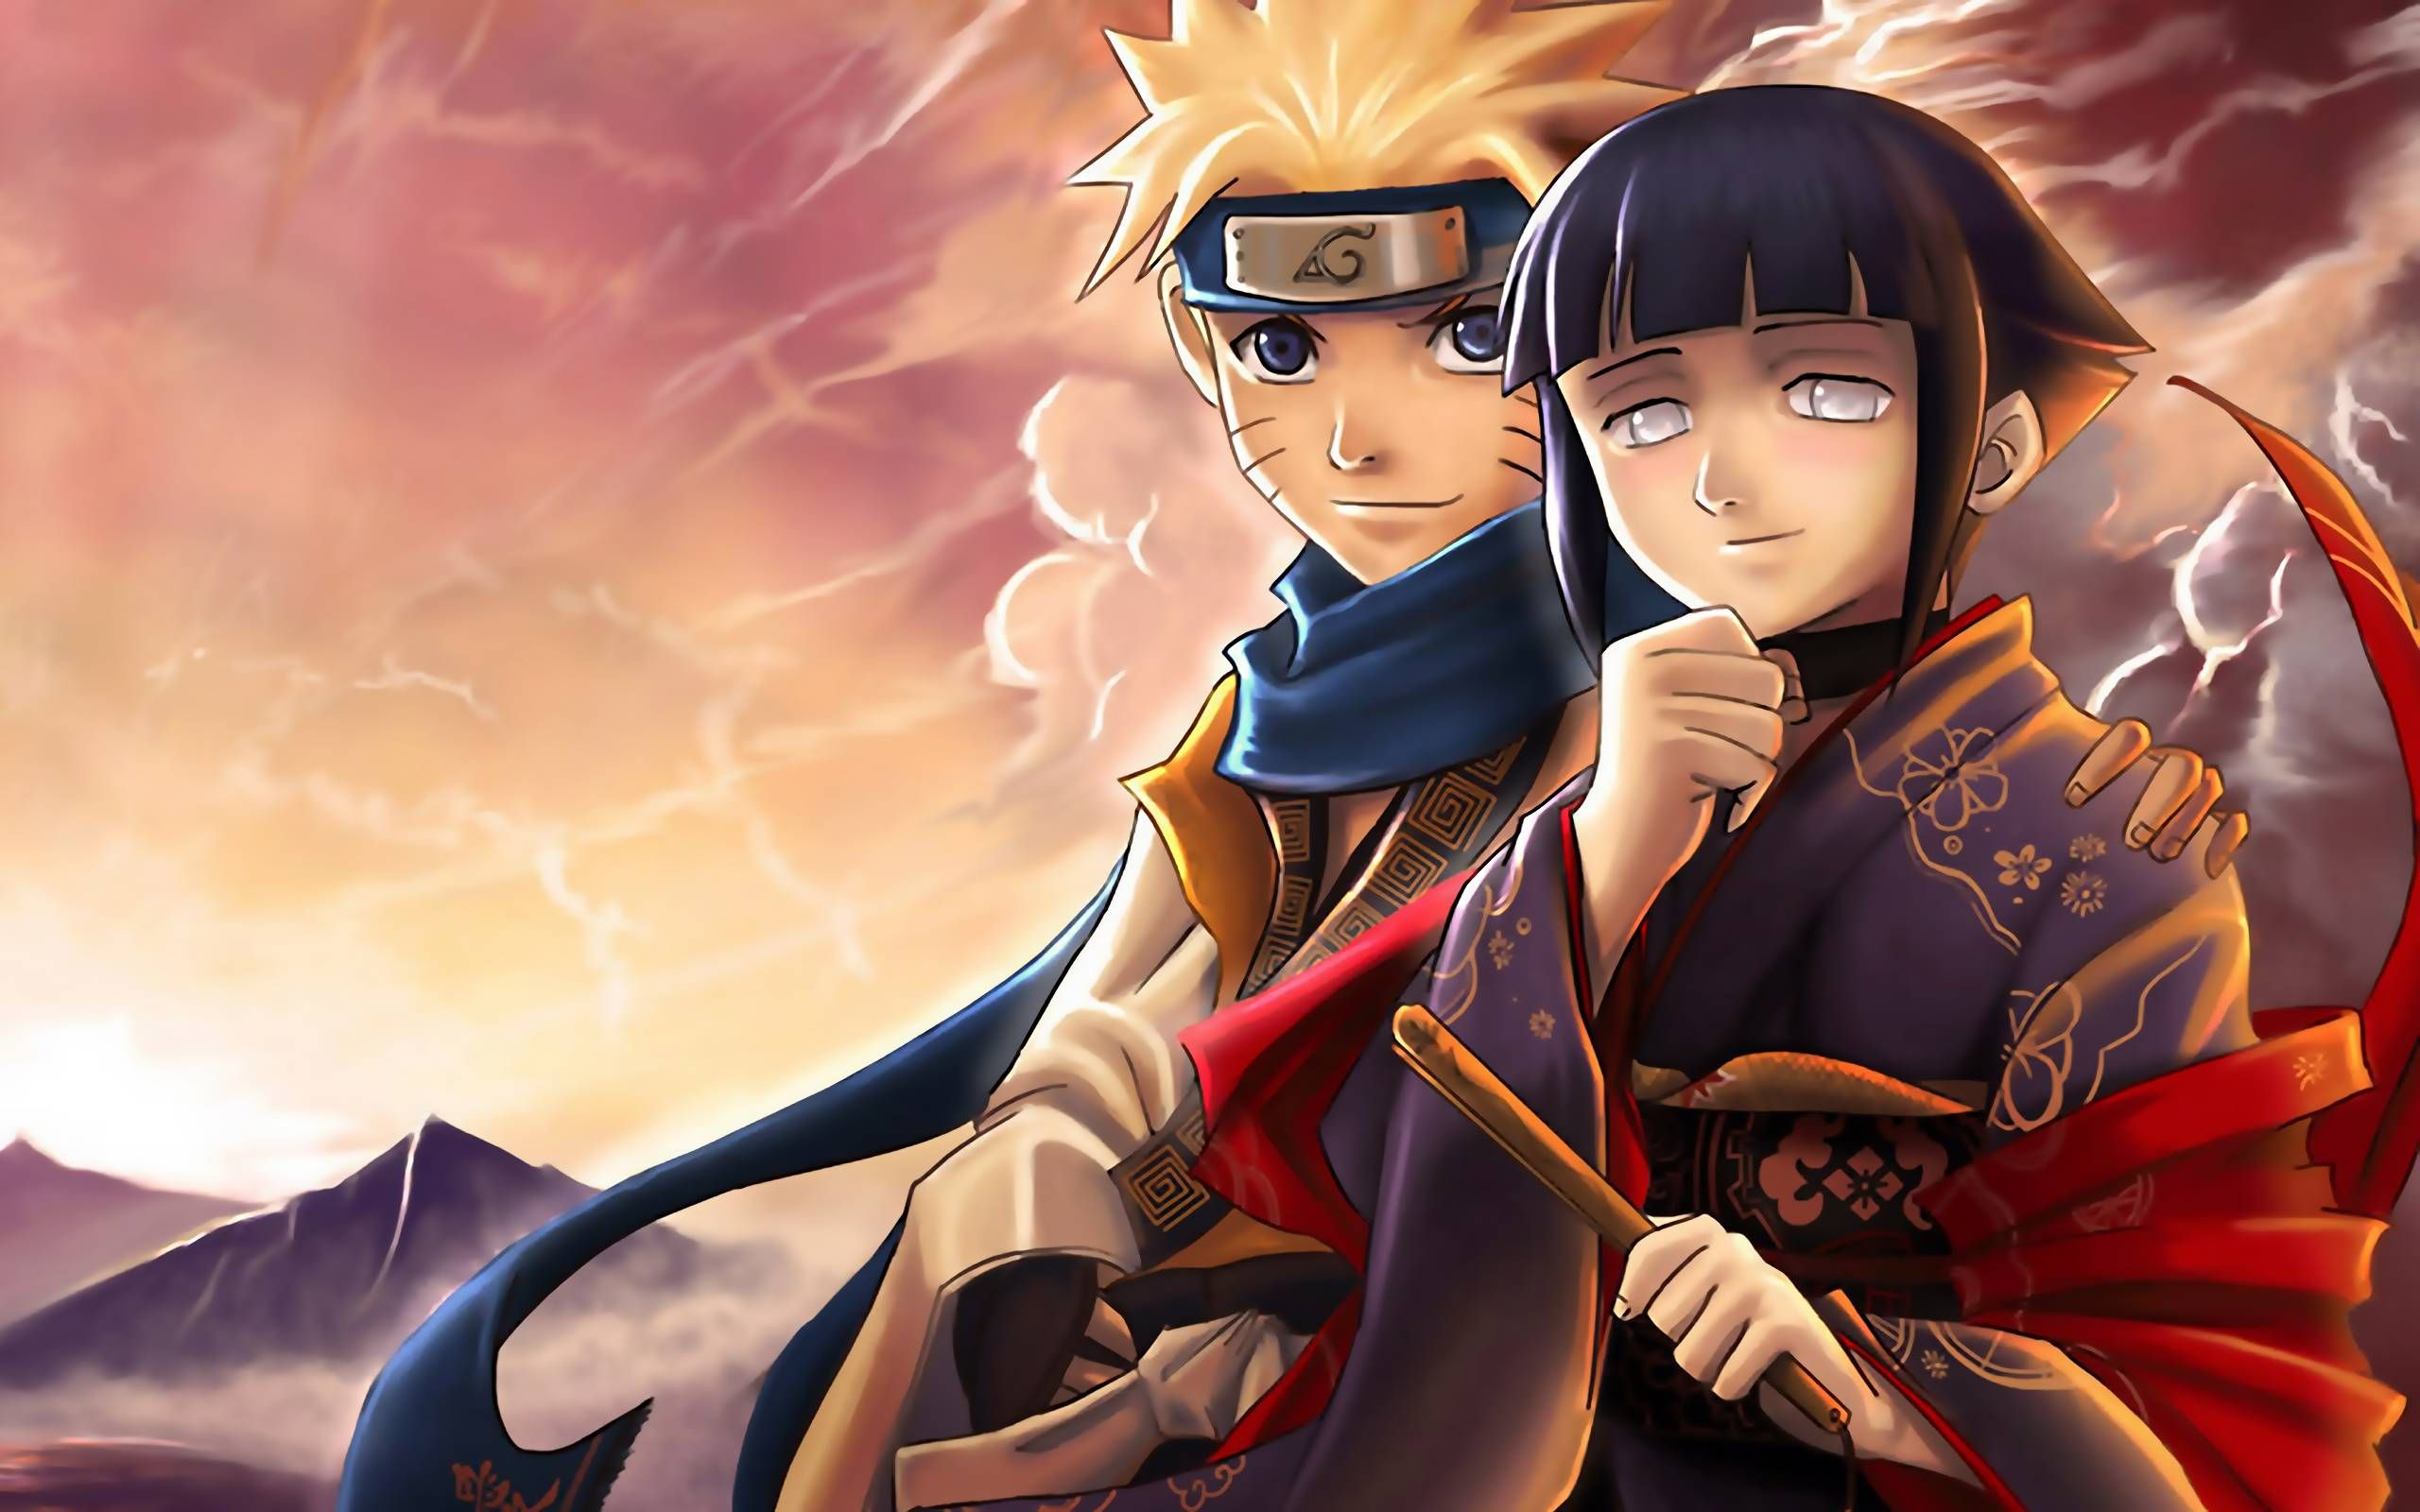 Wallpaper Hd Naruto Collection For Free Download HD